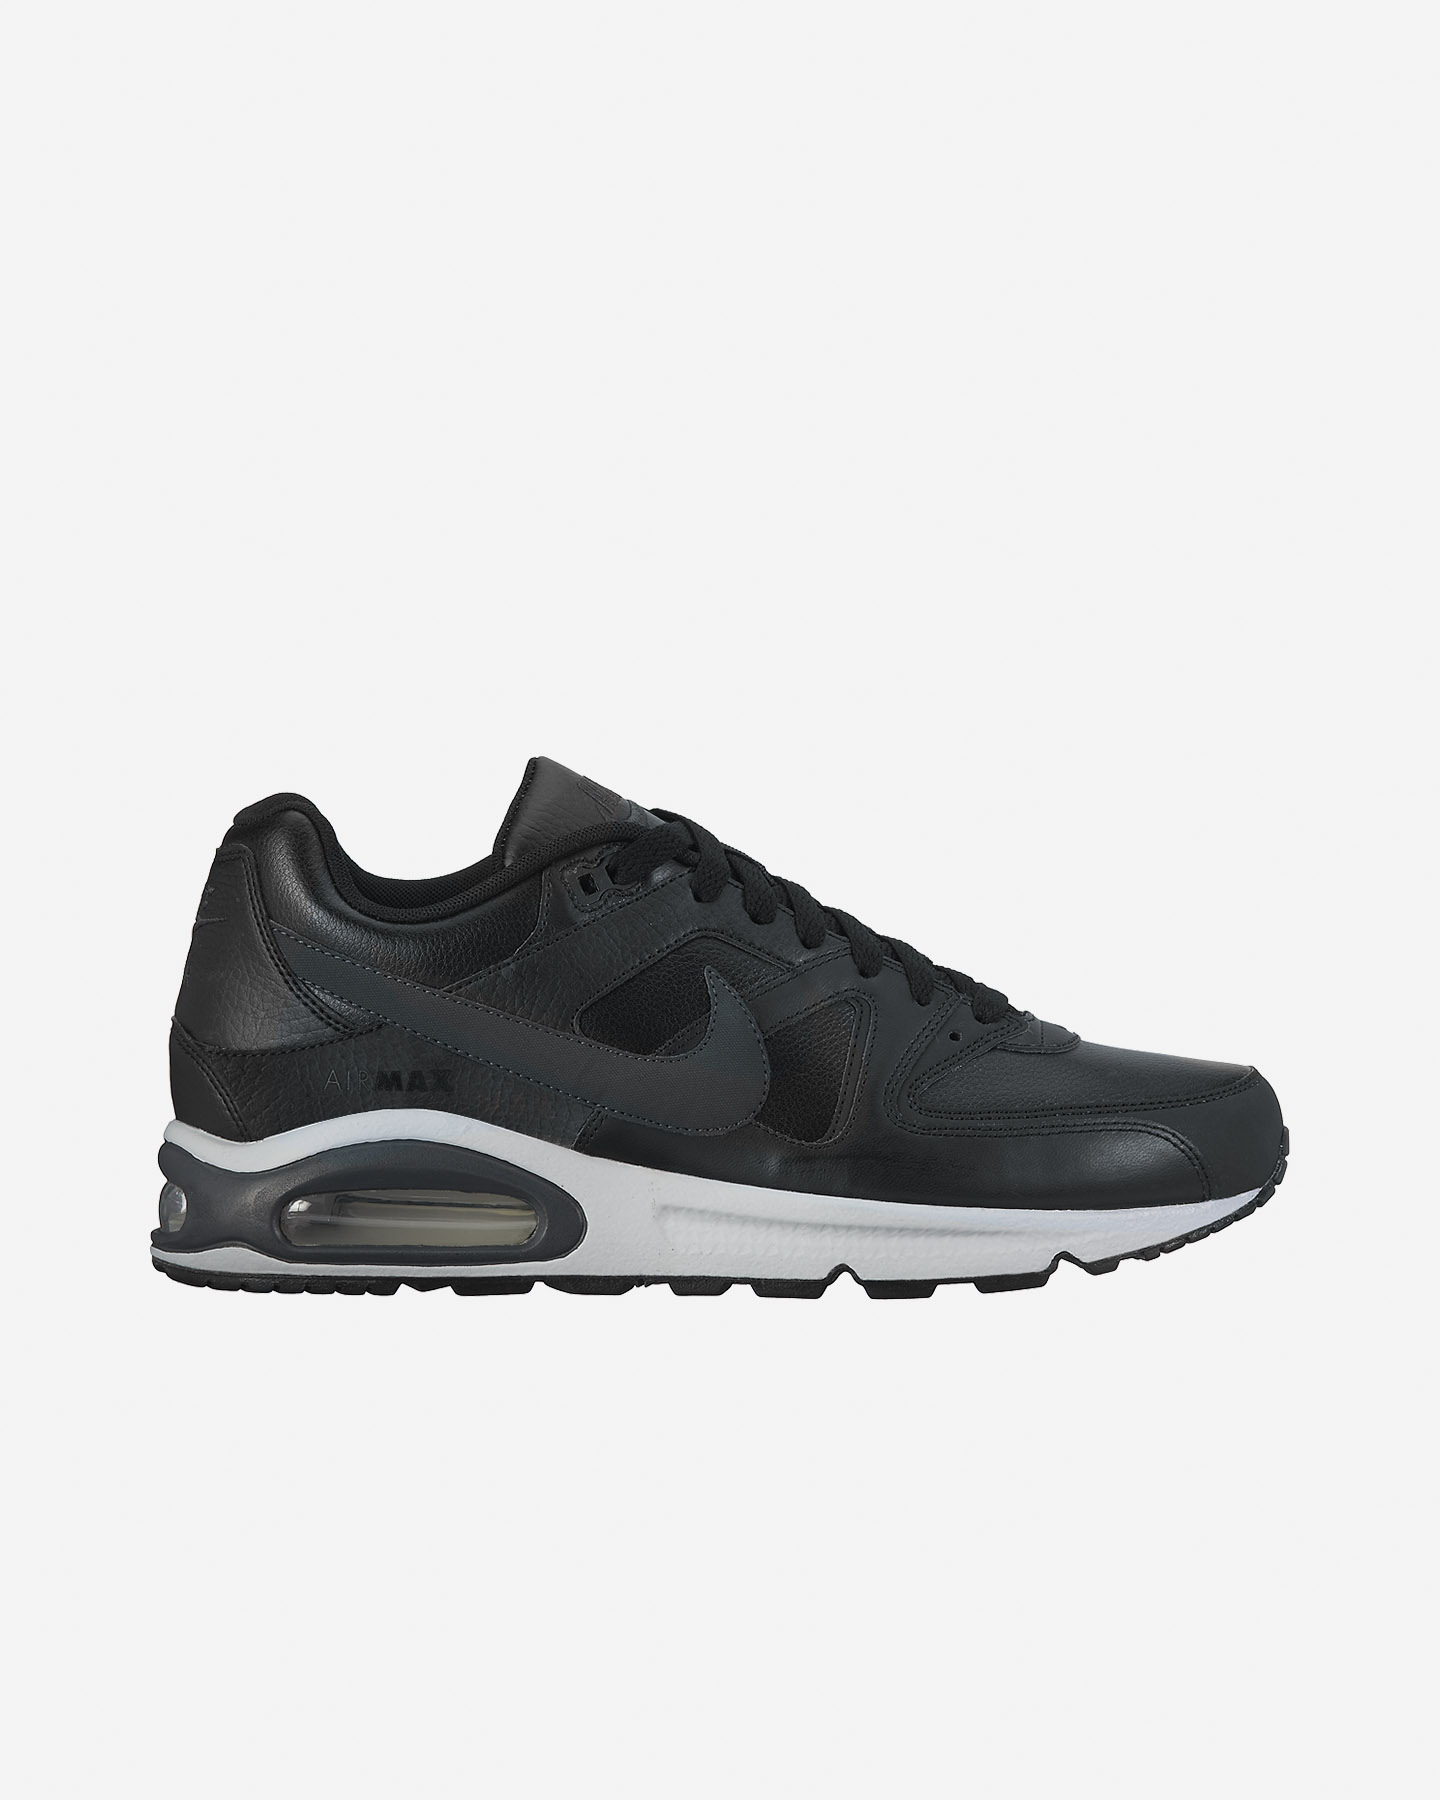 S1304878 001 · Nike air max commandleather uomo ... 03cfe37ff21